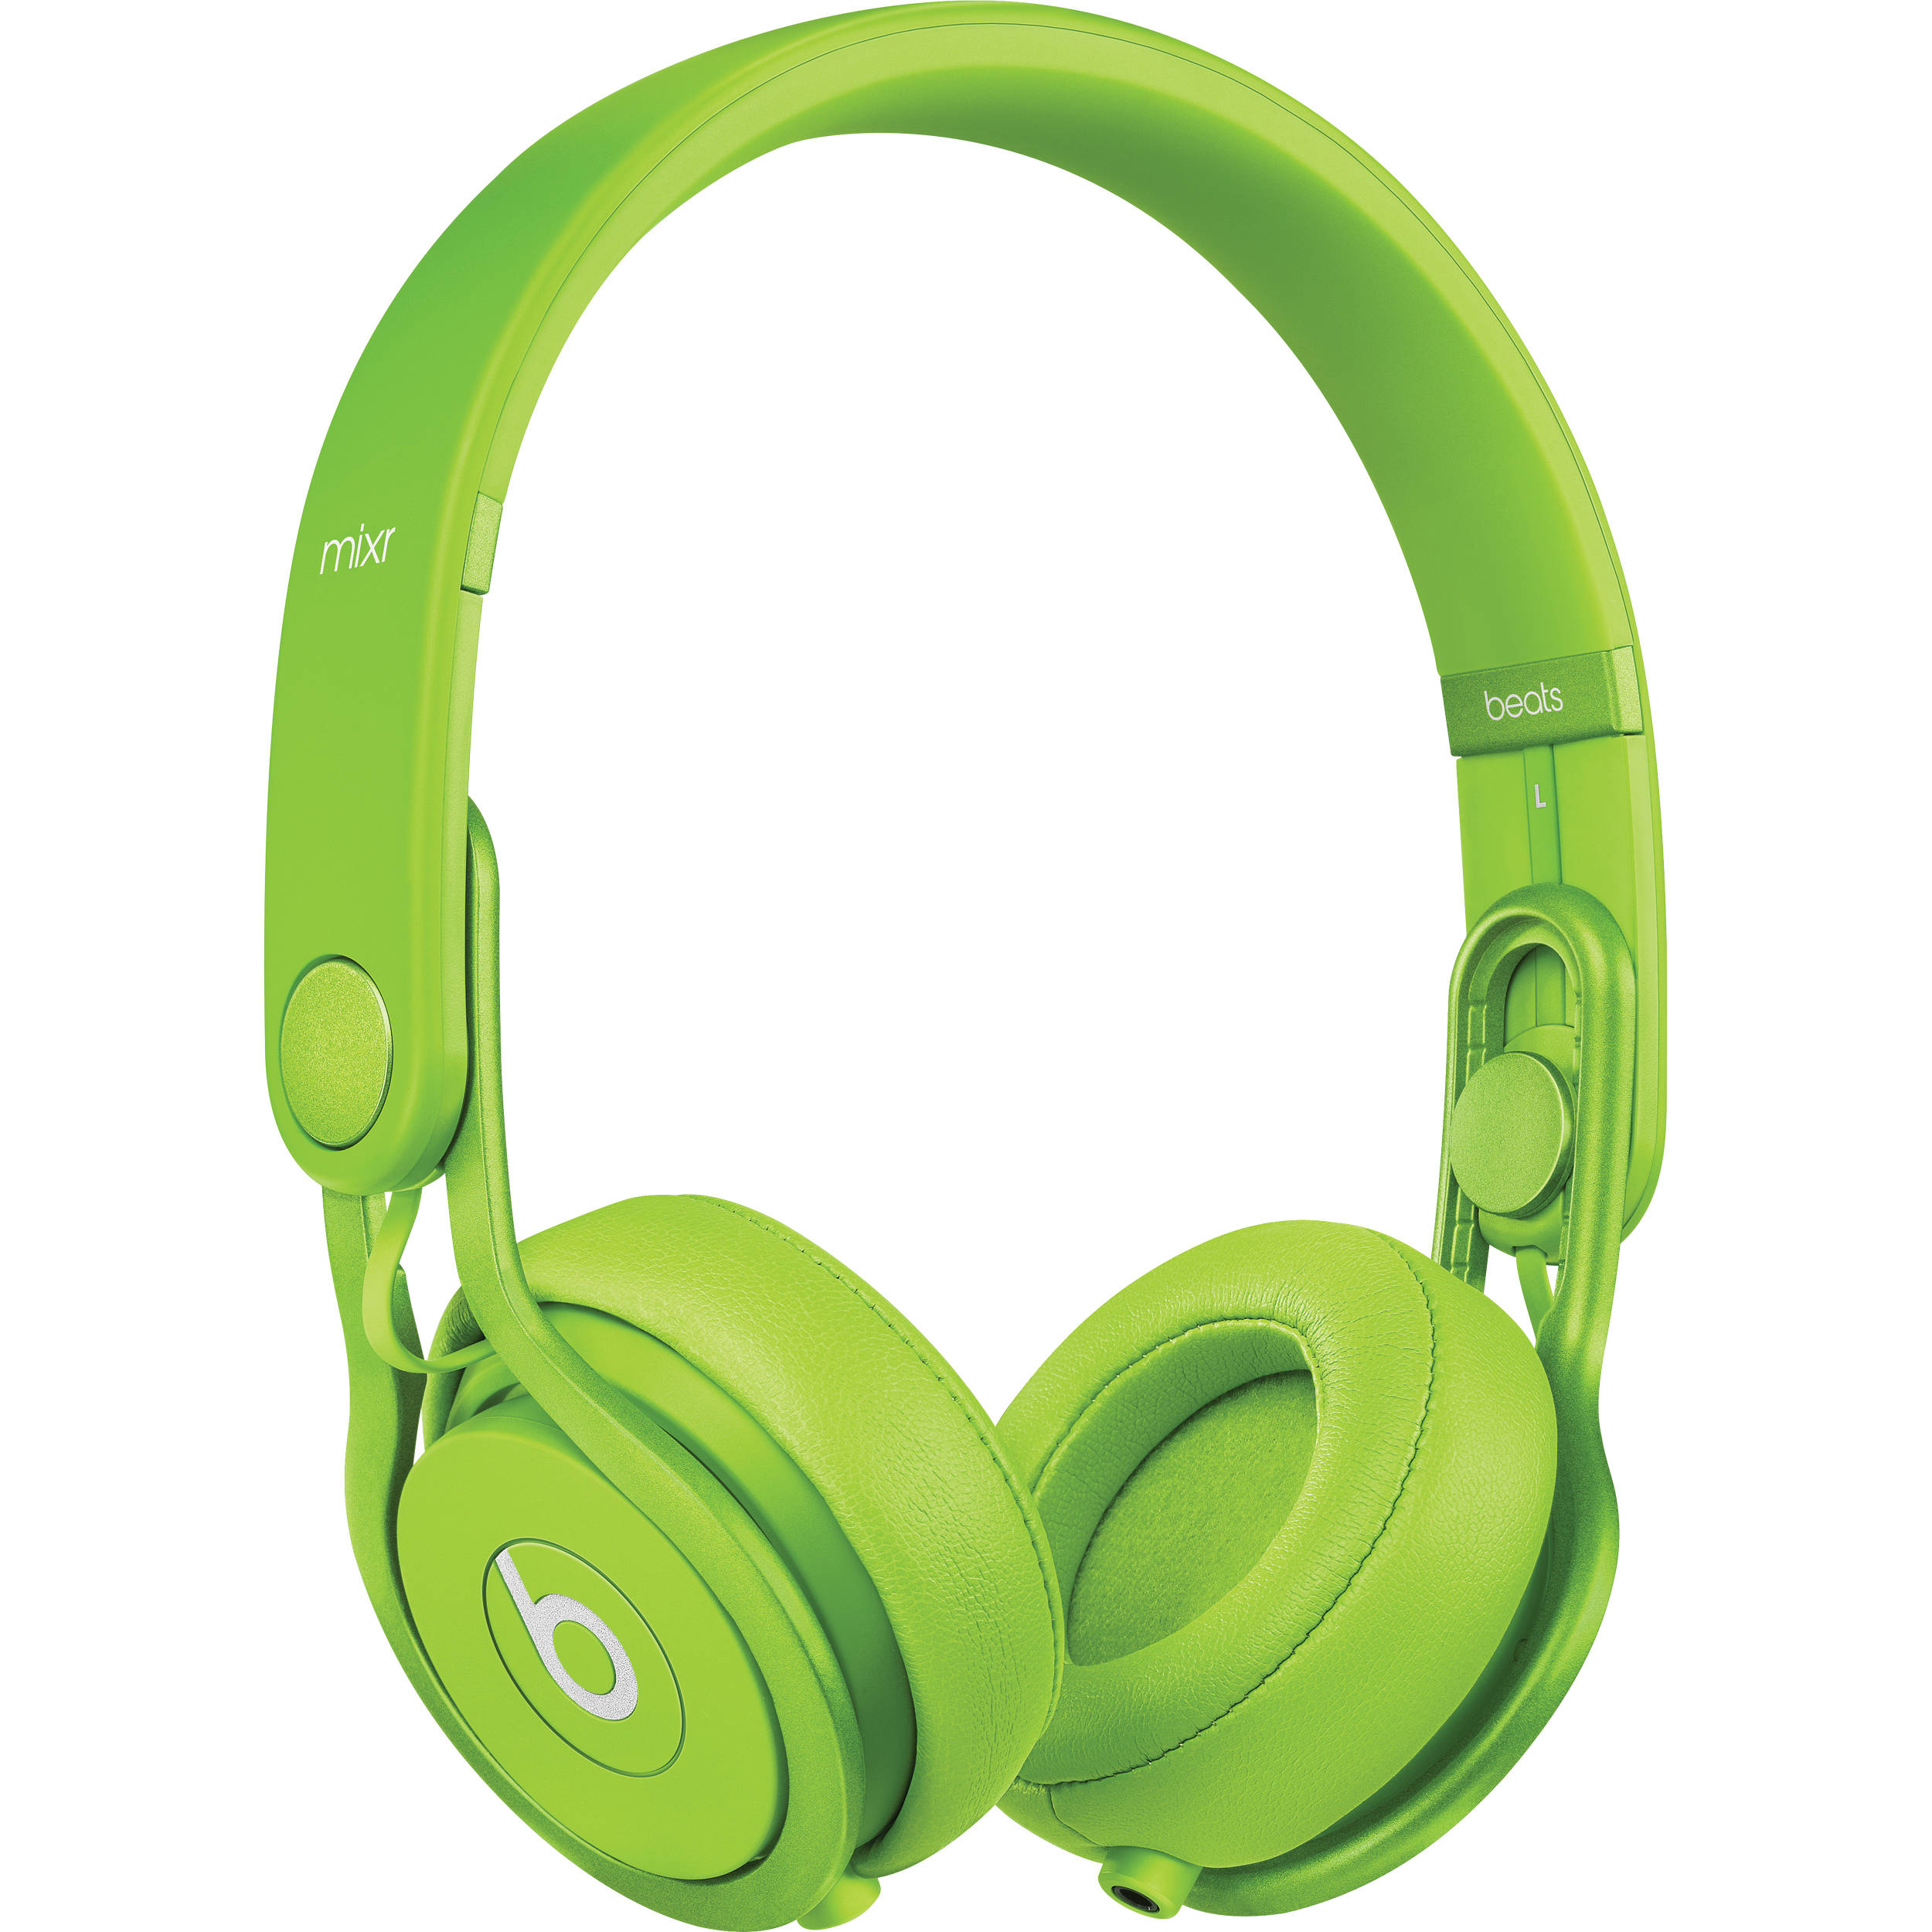 Beats by dr dre mixr lightweight dj headphones candy green